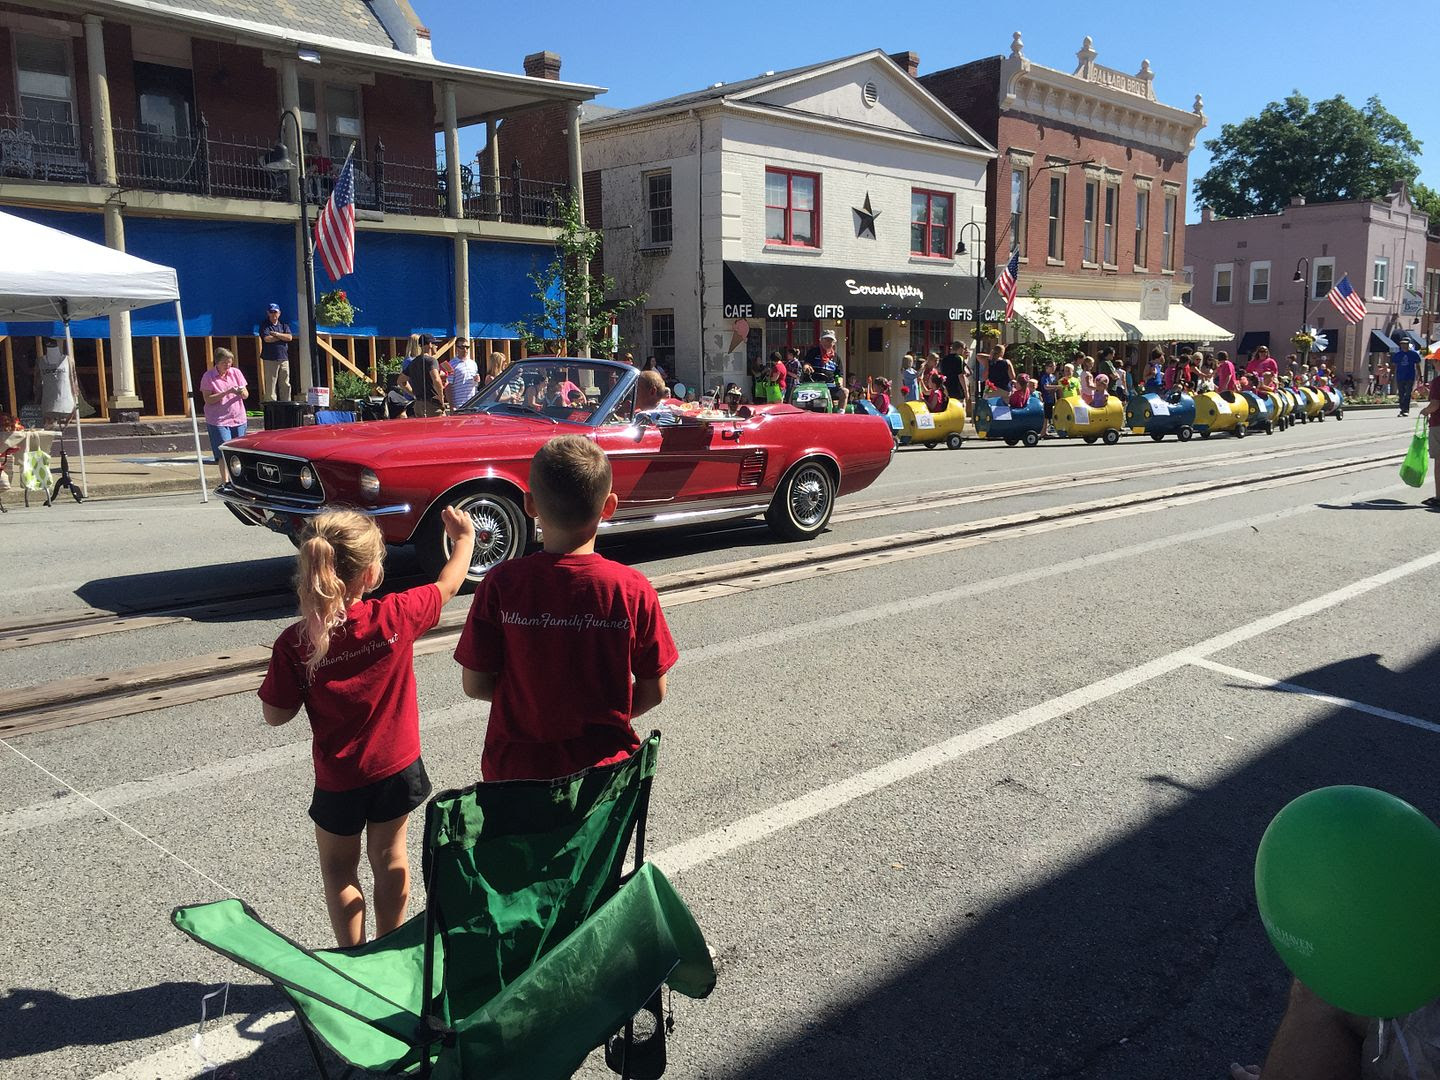 photo Oldham county day waving to parade_zps2bx1wlcf.jpg